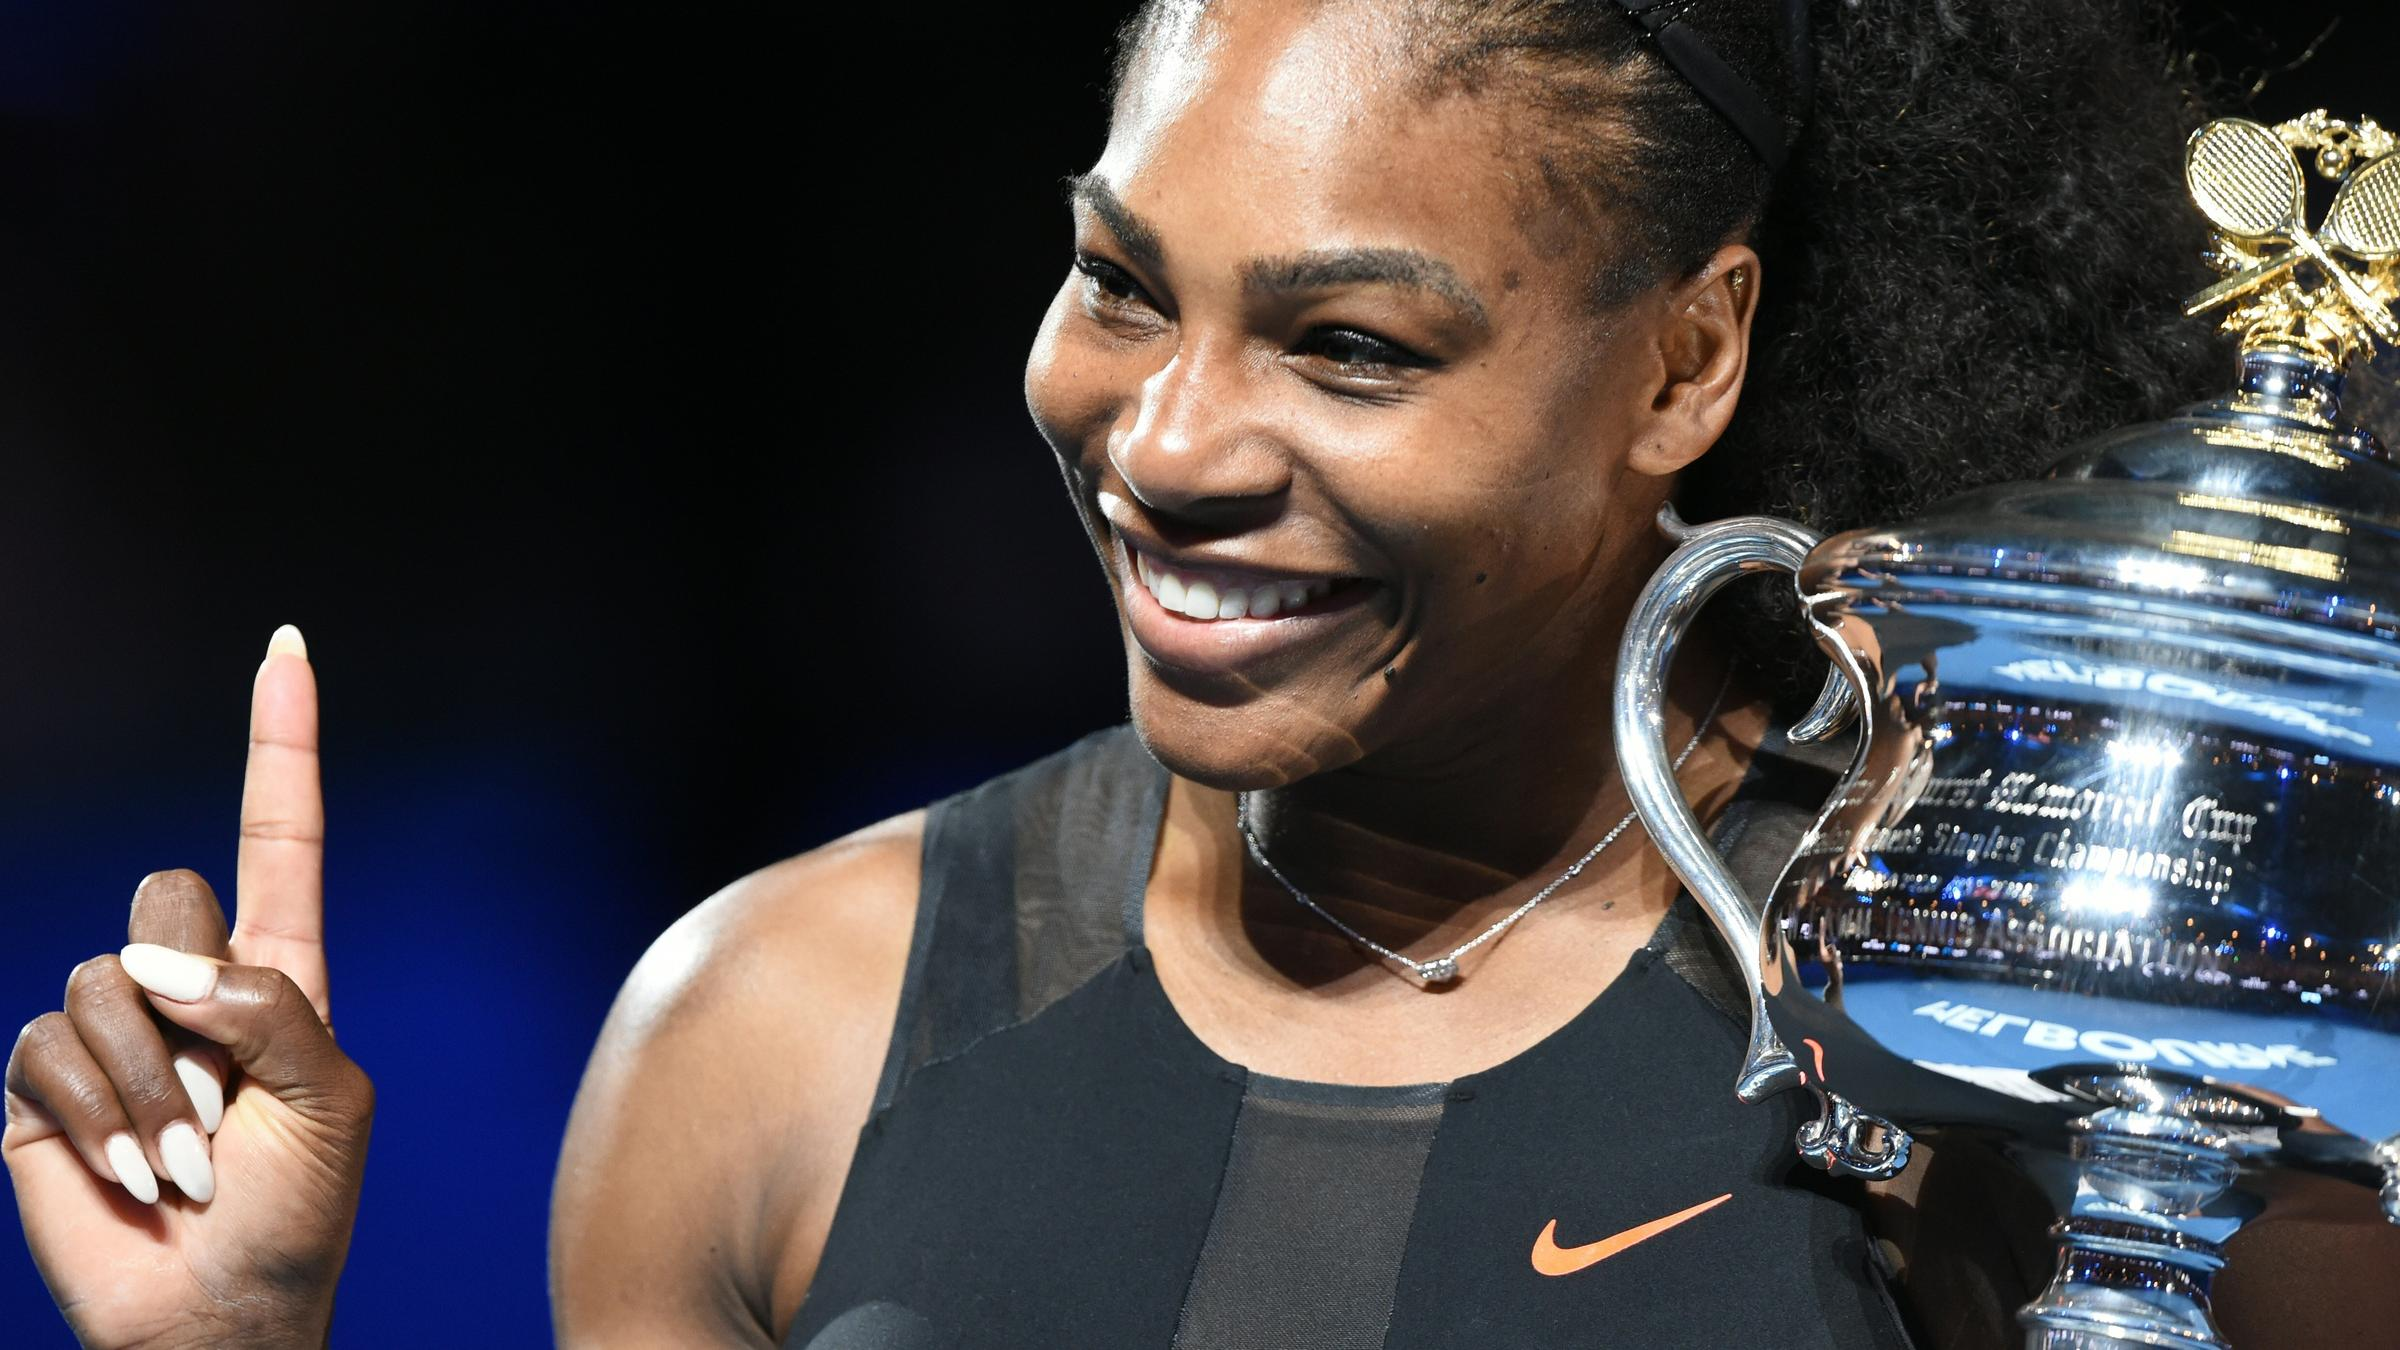 Serena Williams 23 Grand Slam singles Serena Williams 23 Grand Slam singles new images